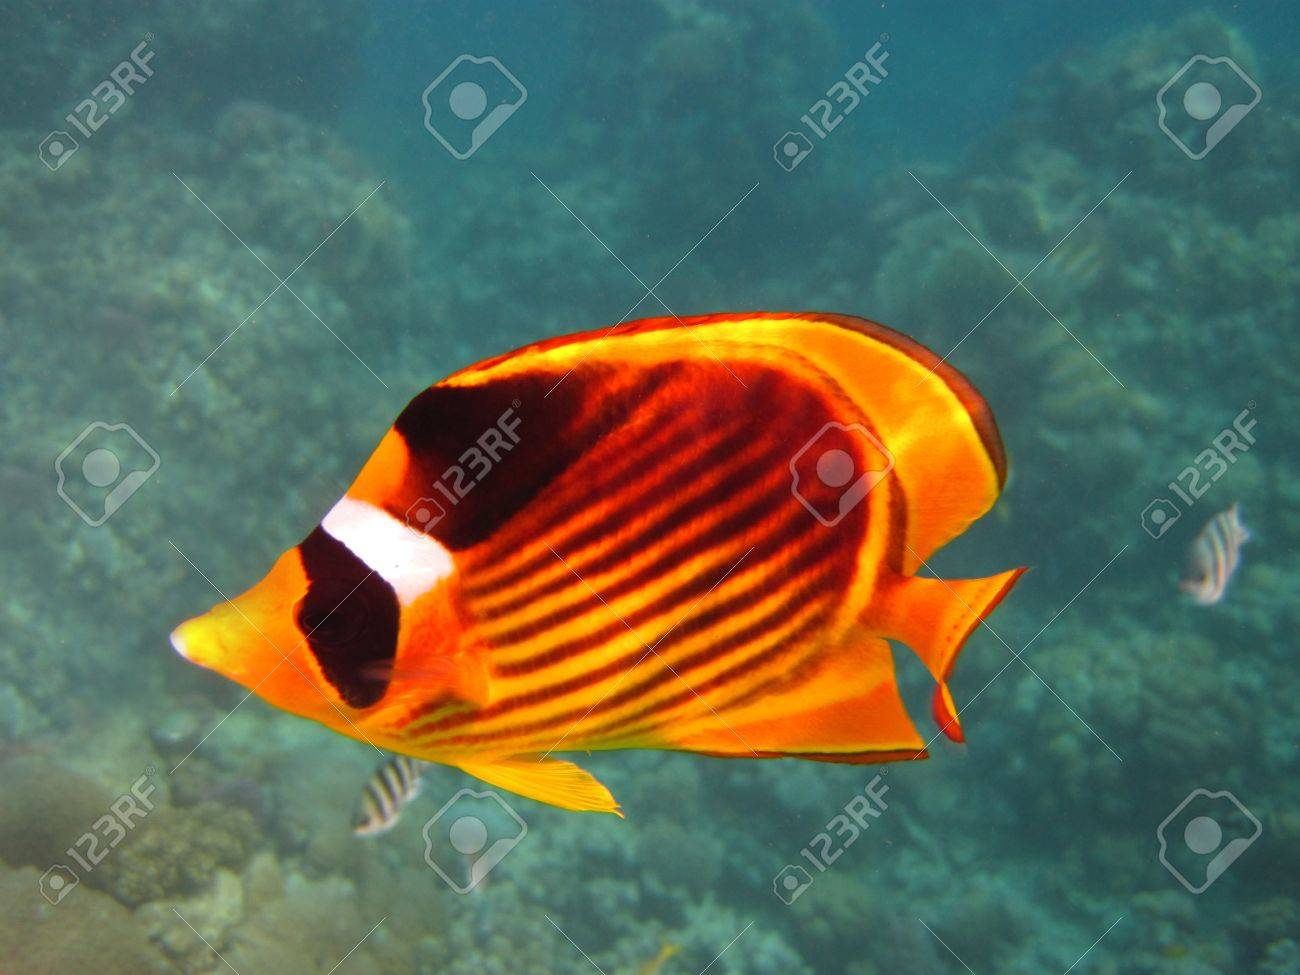 Yellow And Black Butterfly Fish In Egypt Stock Photo, Picture And ...